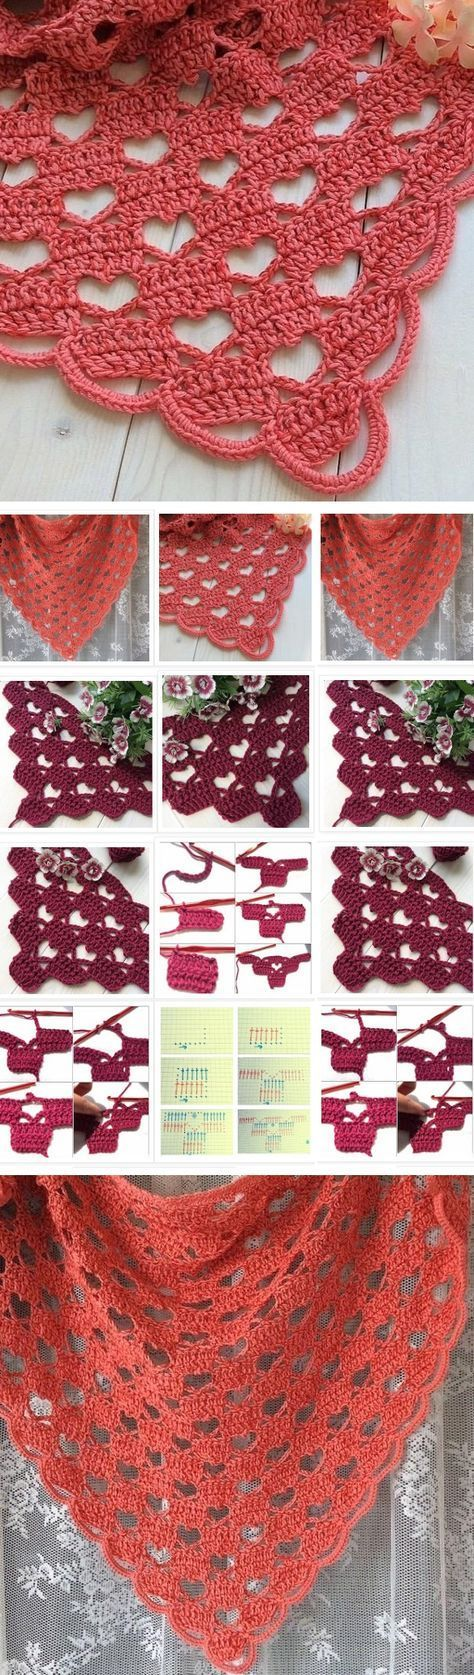 78 best Strickmuster images on Pinterest | Knitting patterns, Knit ...